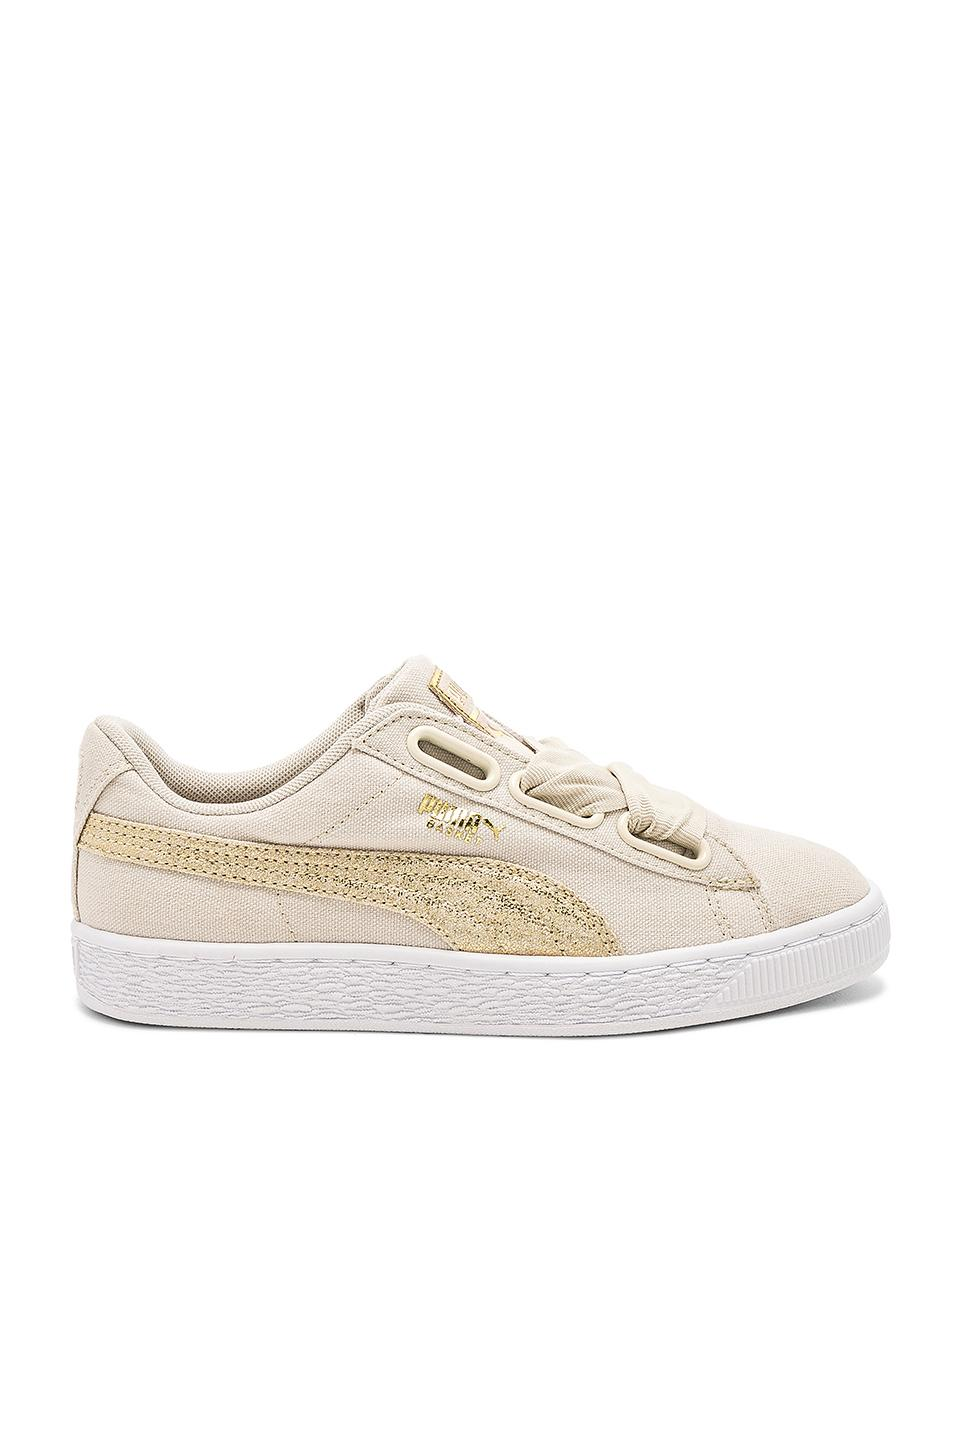 Puma Basket Heart Canvas Sneaker In Neutral